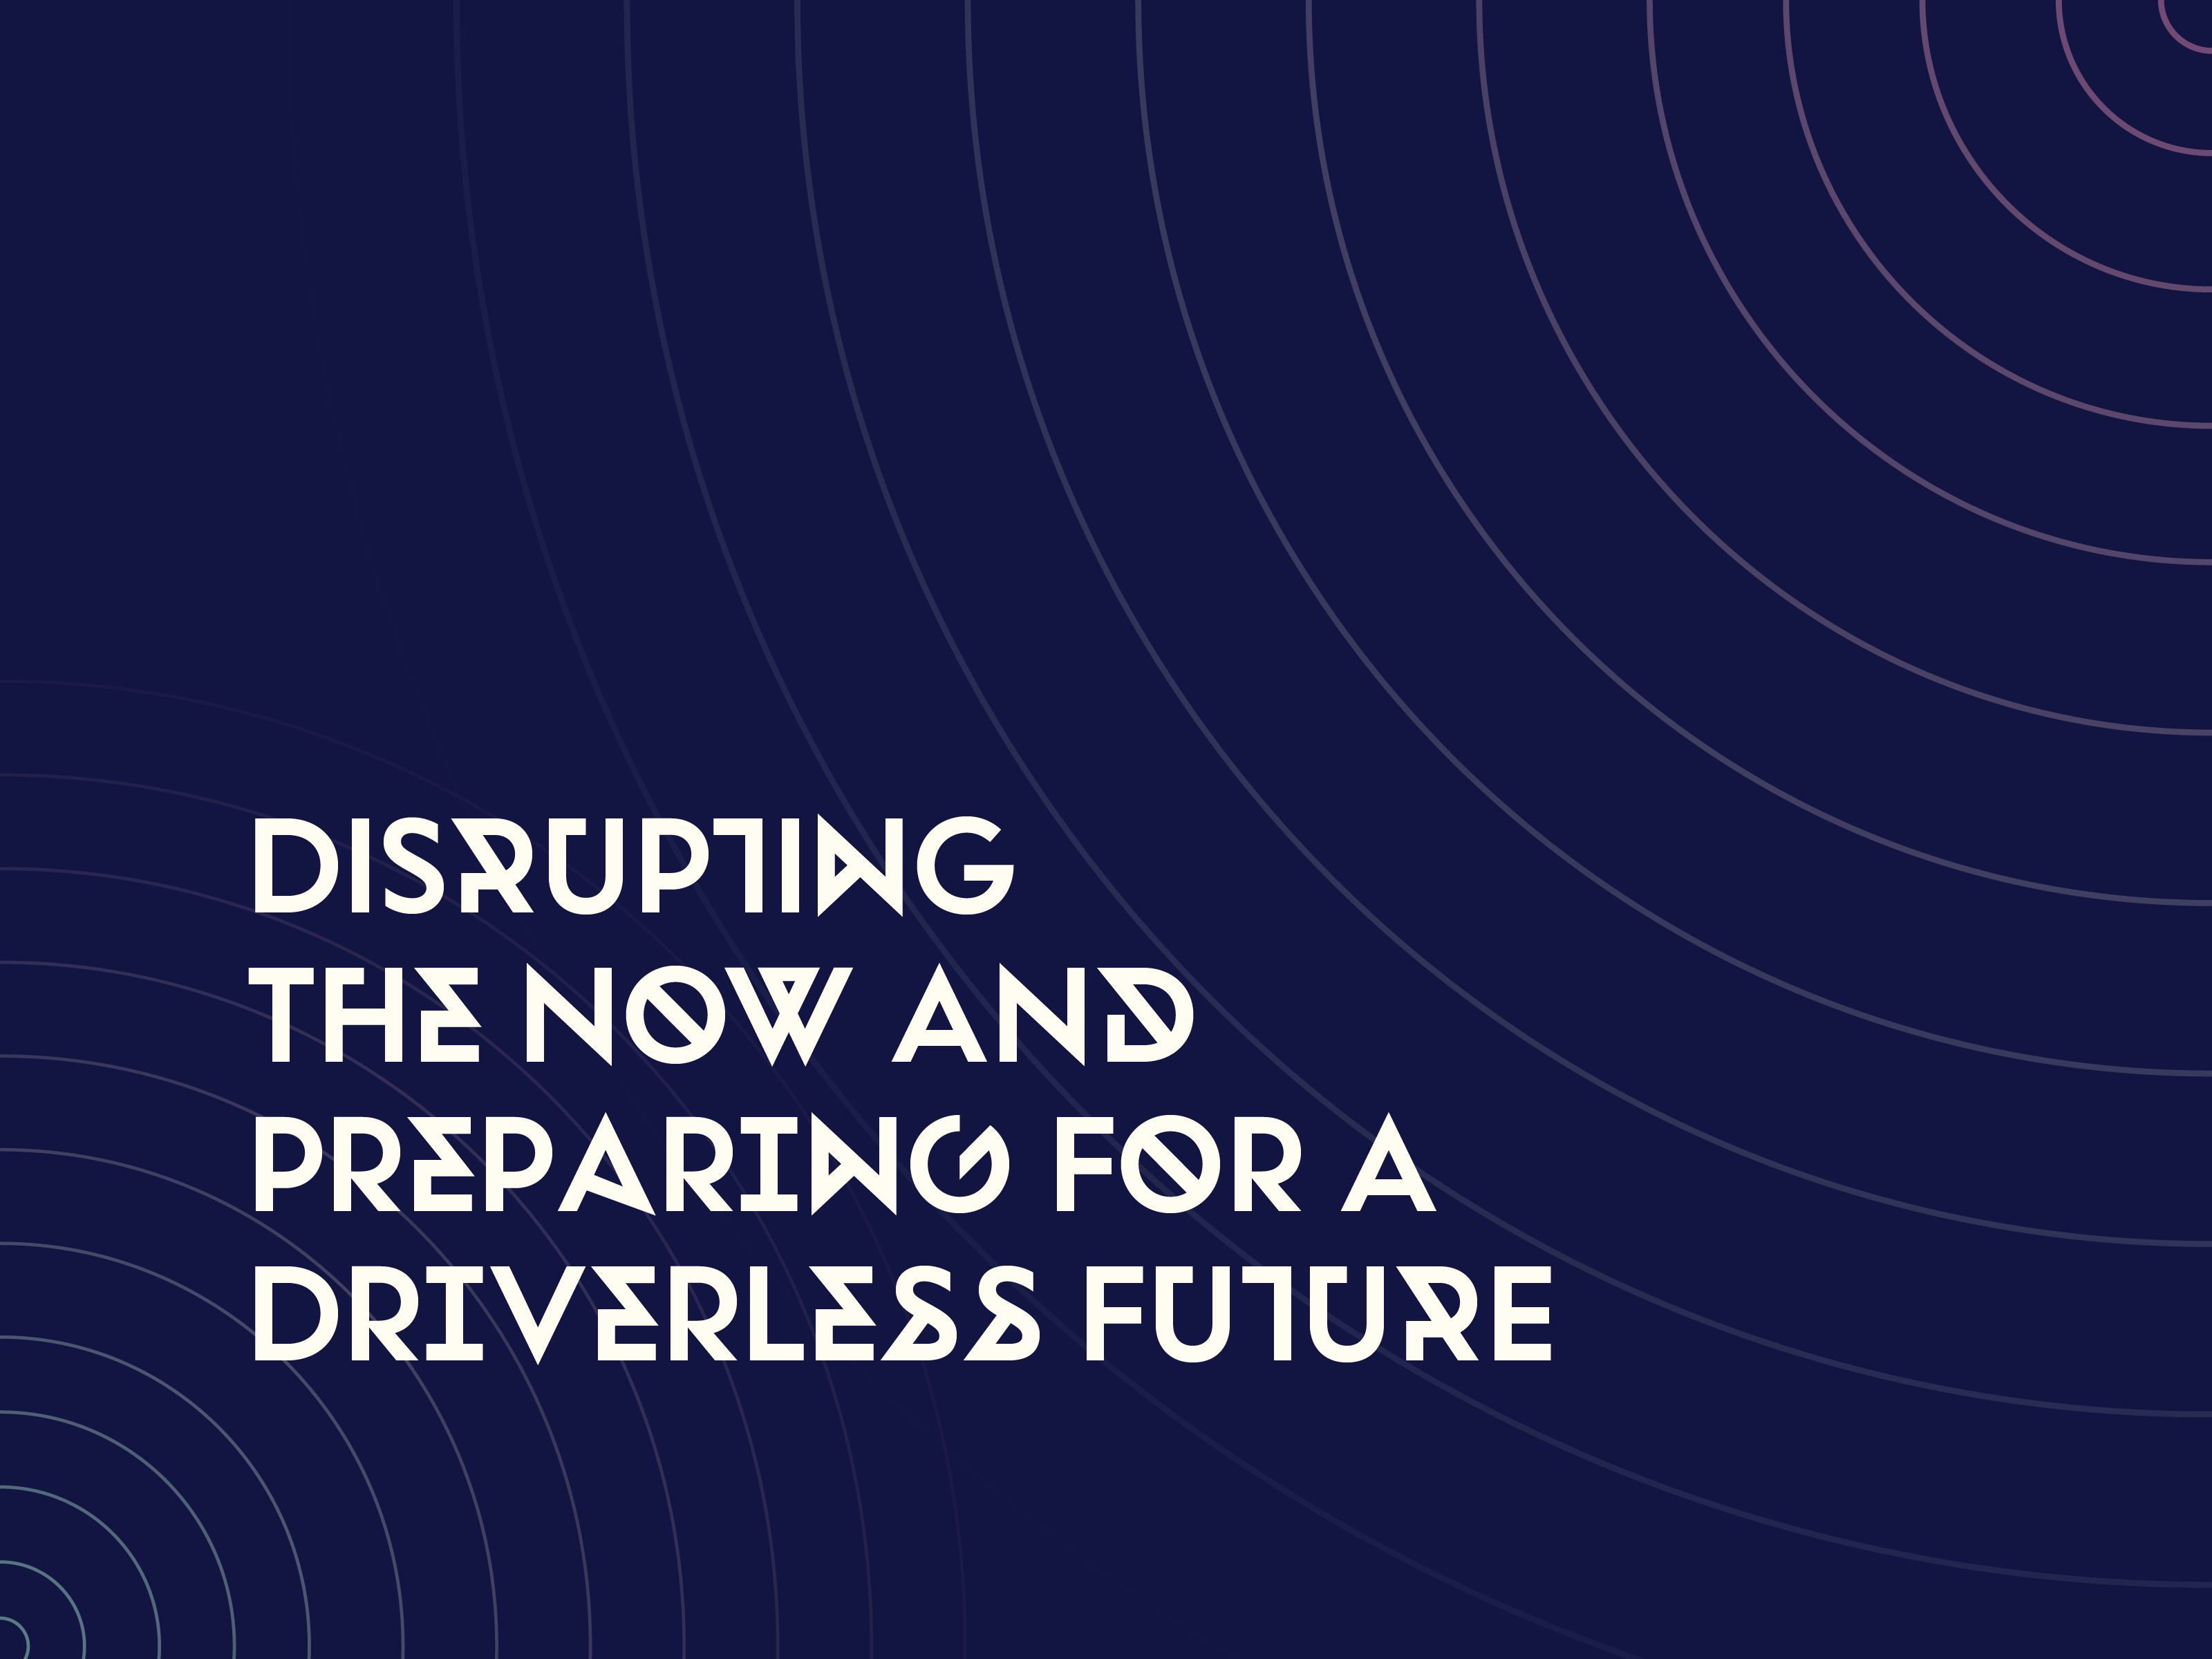 Disrupting the now and preparing for a driverless future